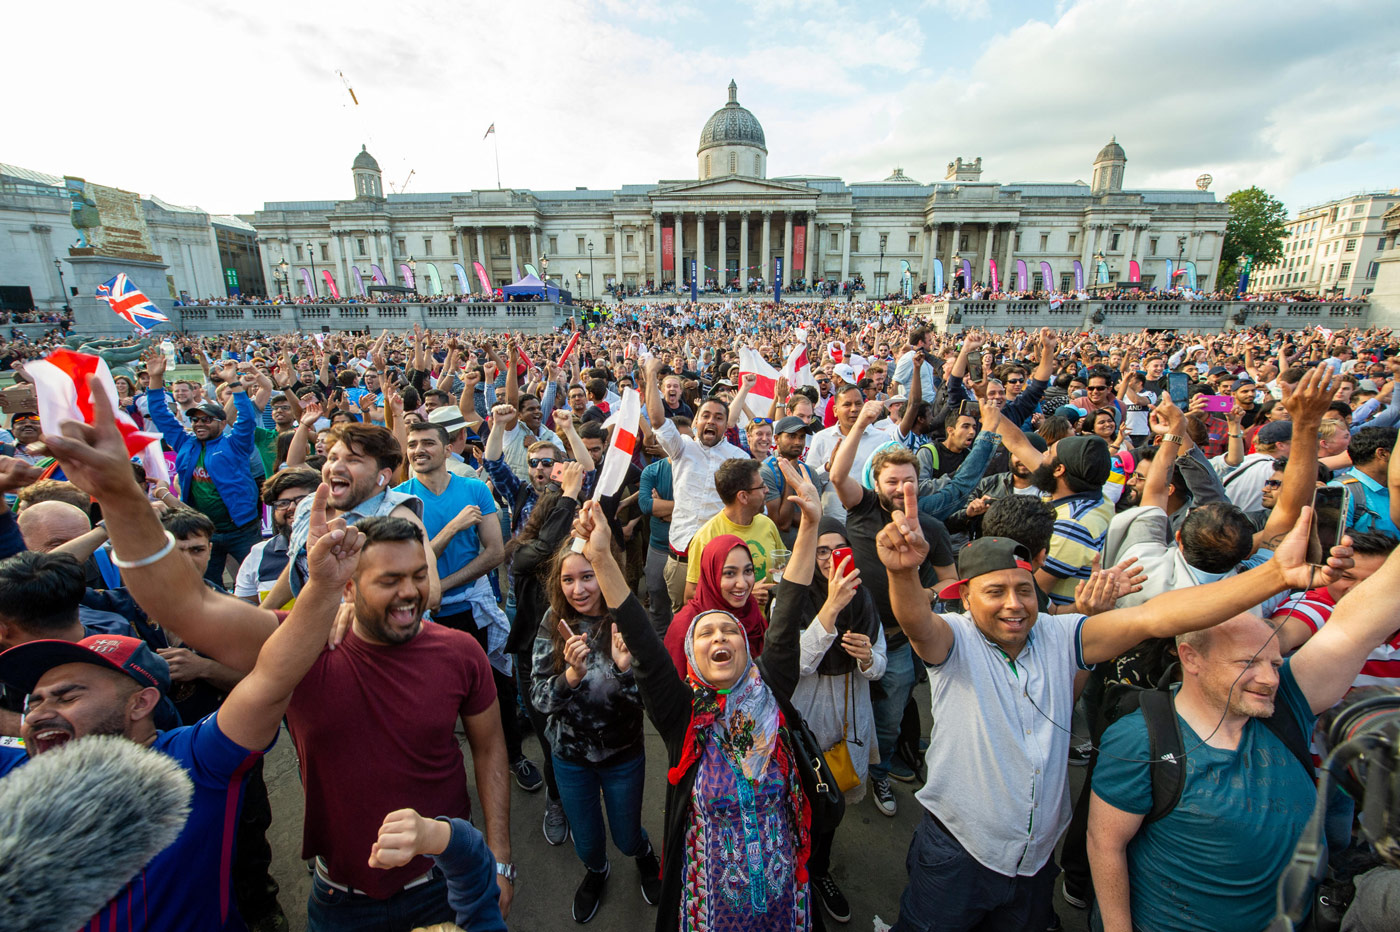 Cricket fans watching the 2019 World Cup final in Trafalgar Square, London